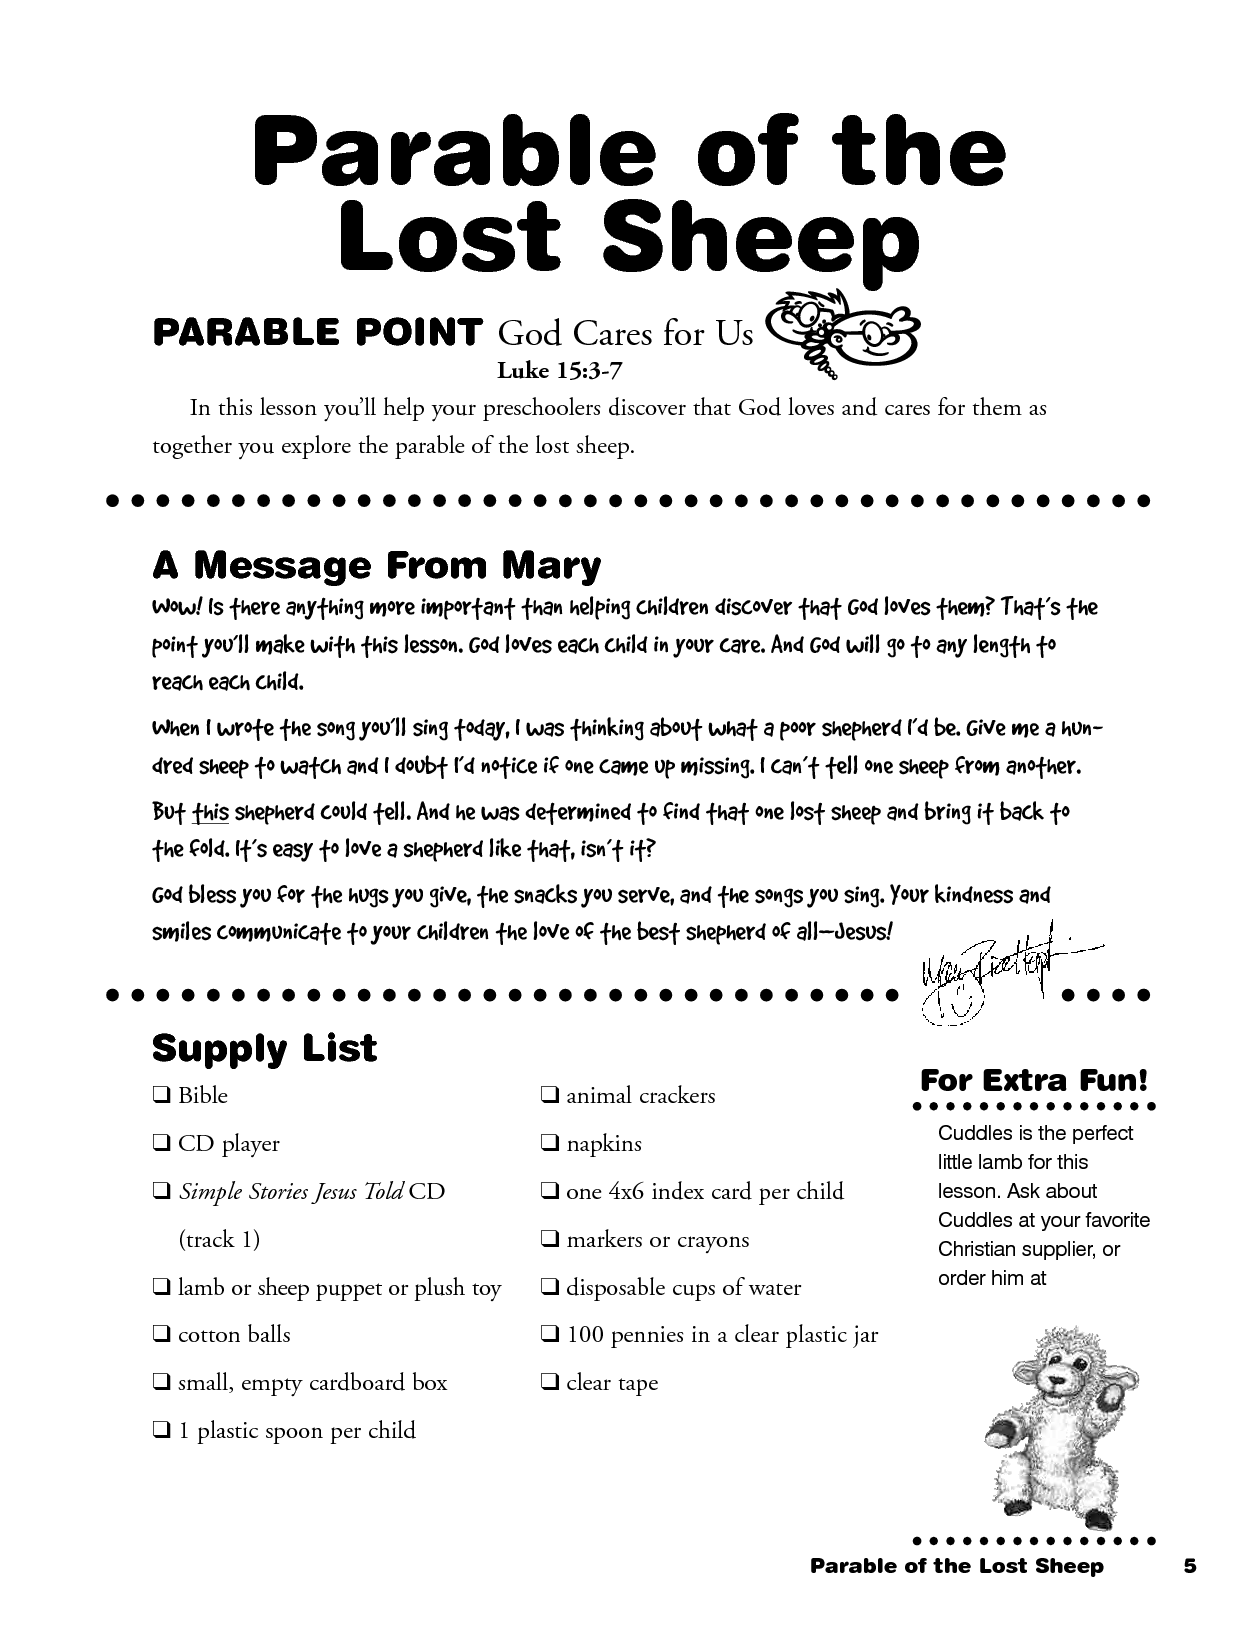 Colouring In Sheets For Parable Of The Lost Sheep Coloring